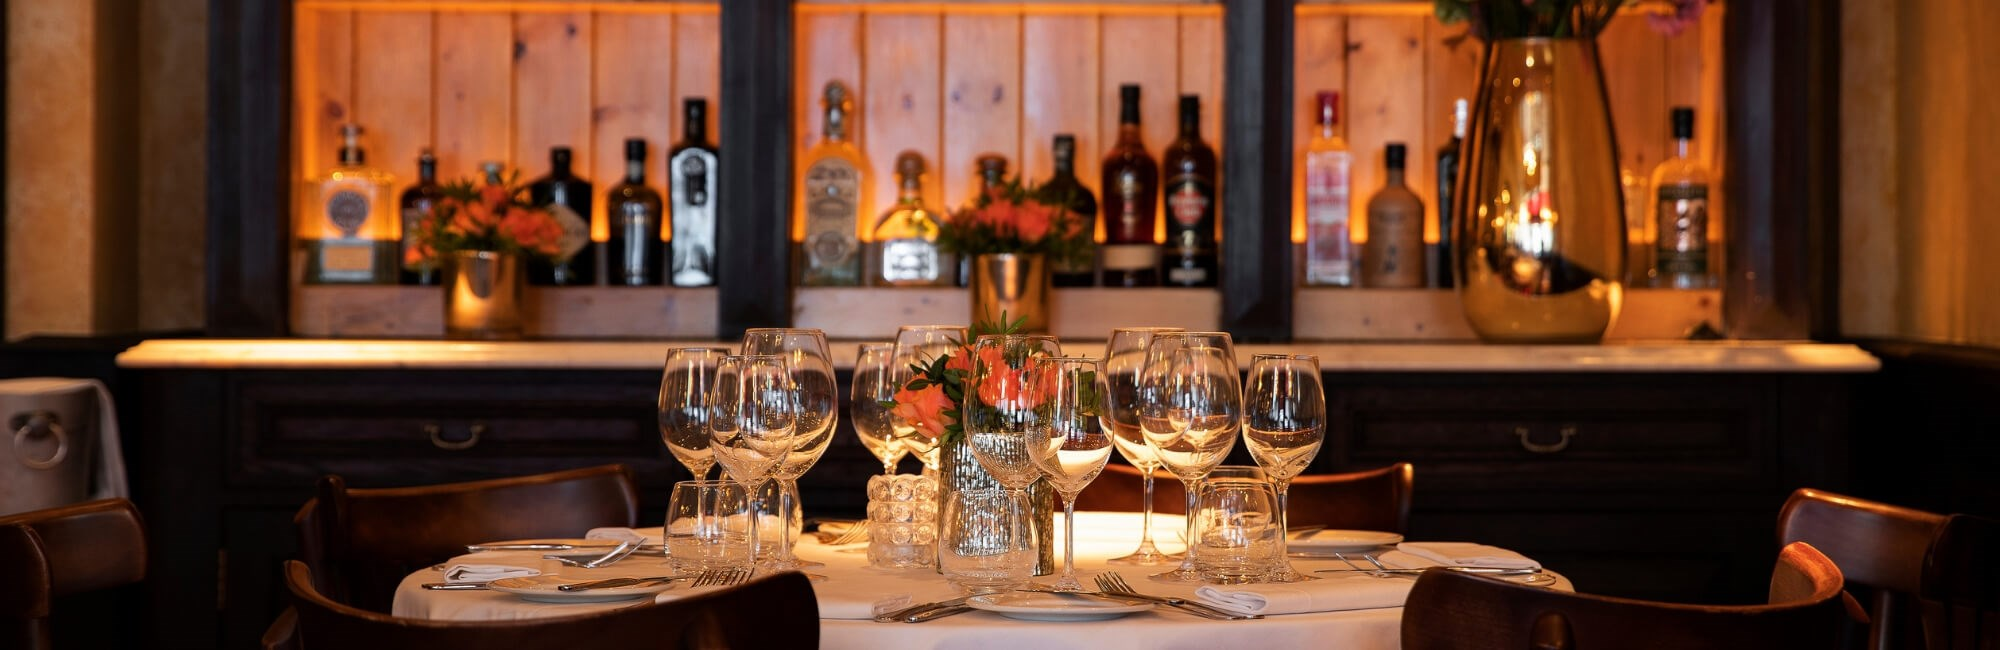 The Private Dining room at Balthazar is ideal to dine with friends in London